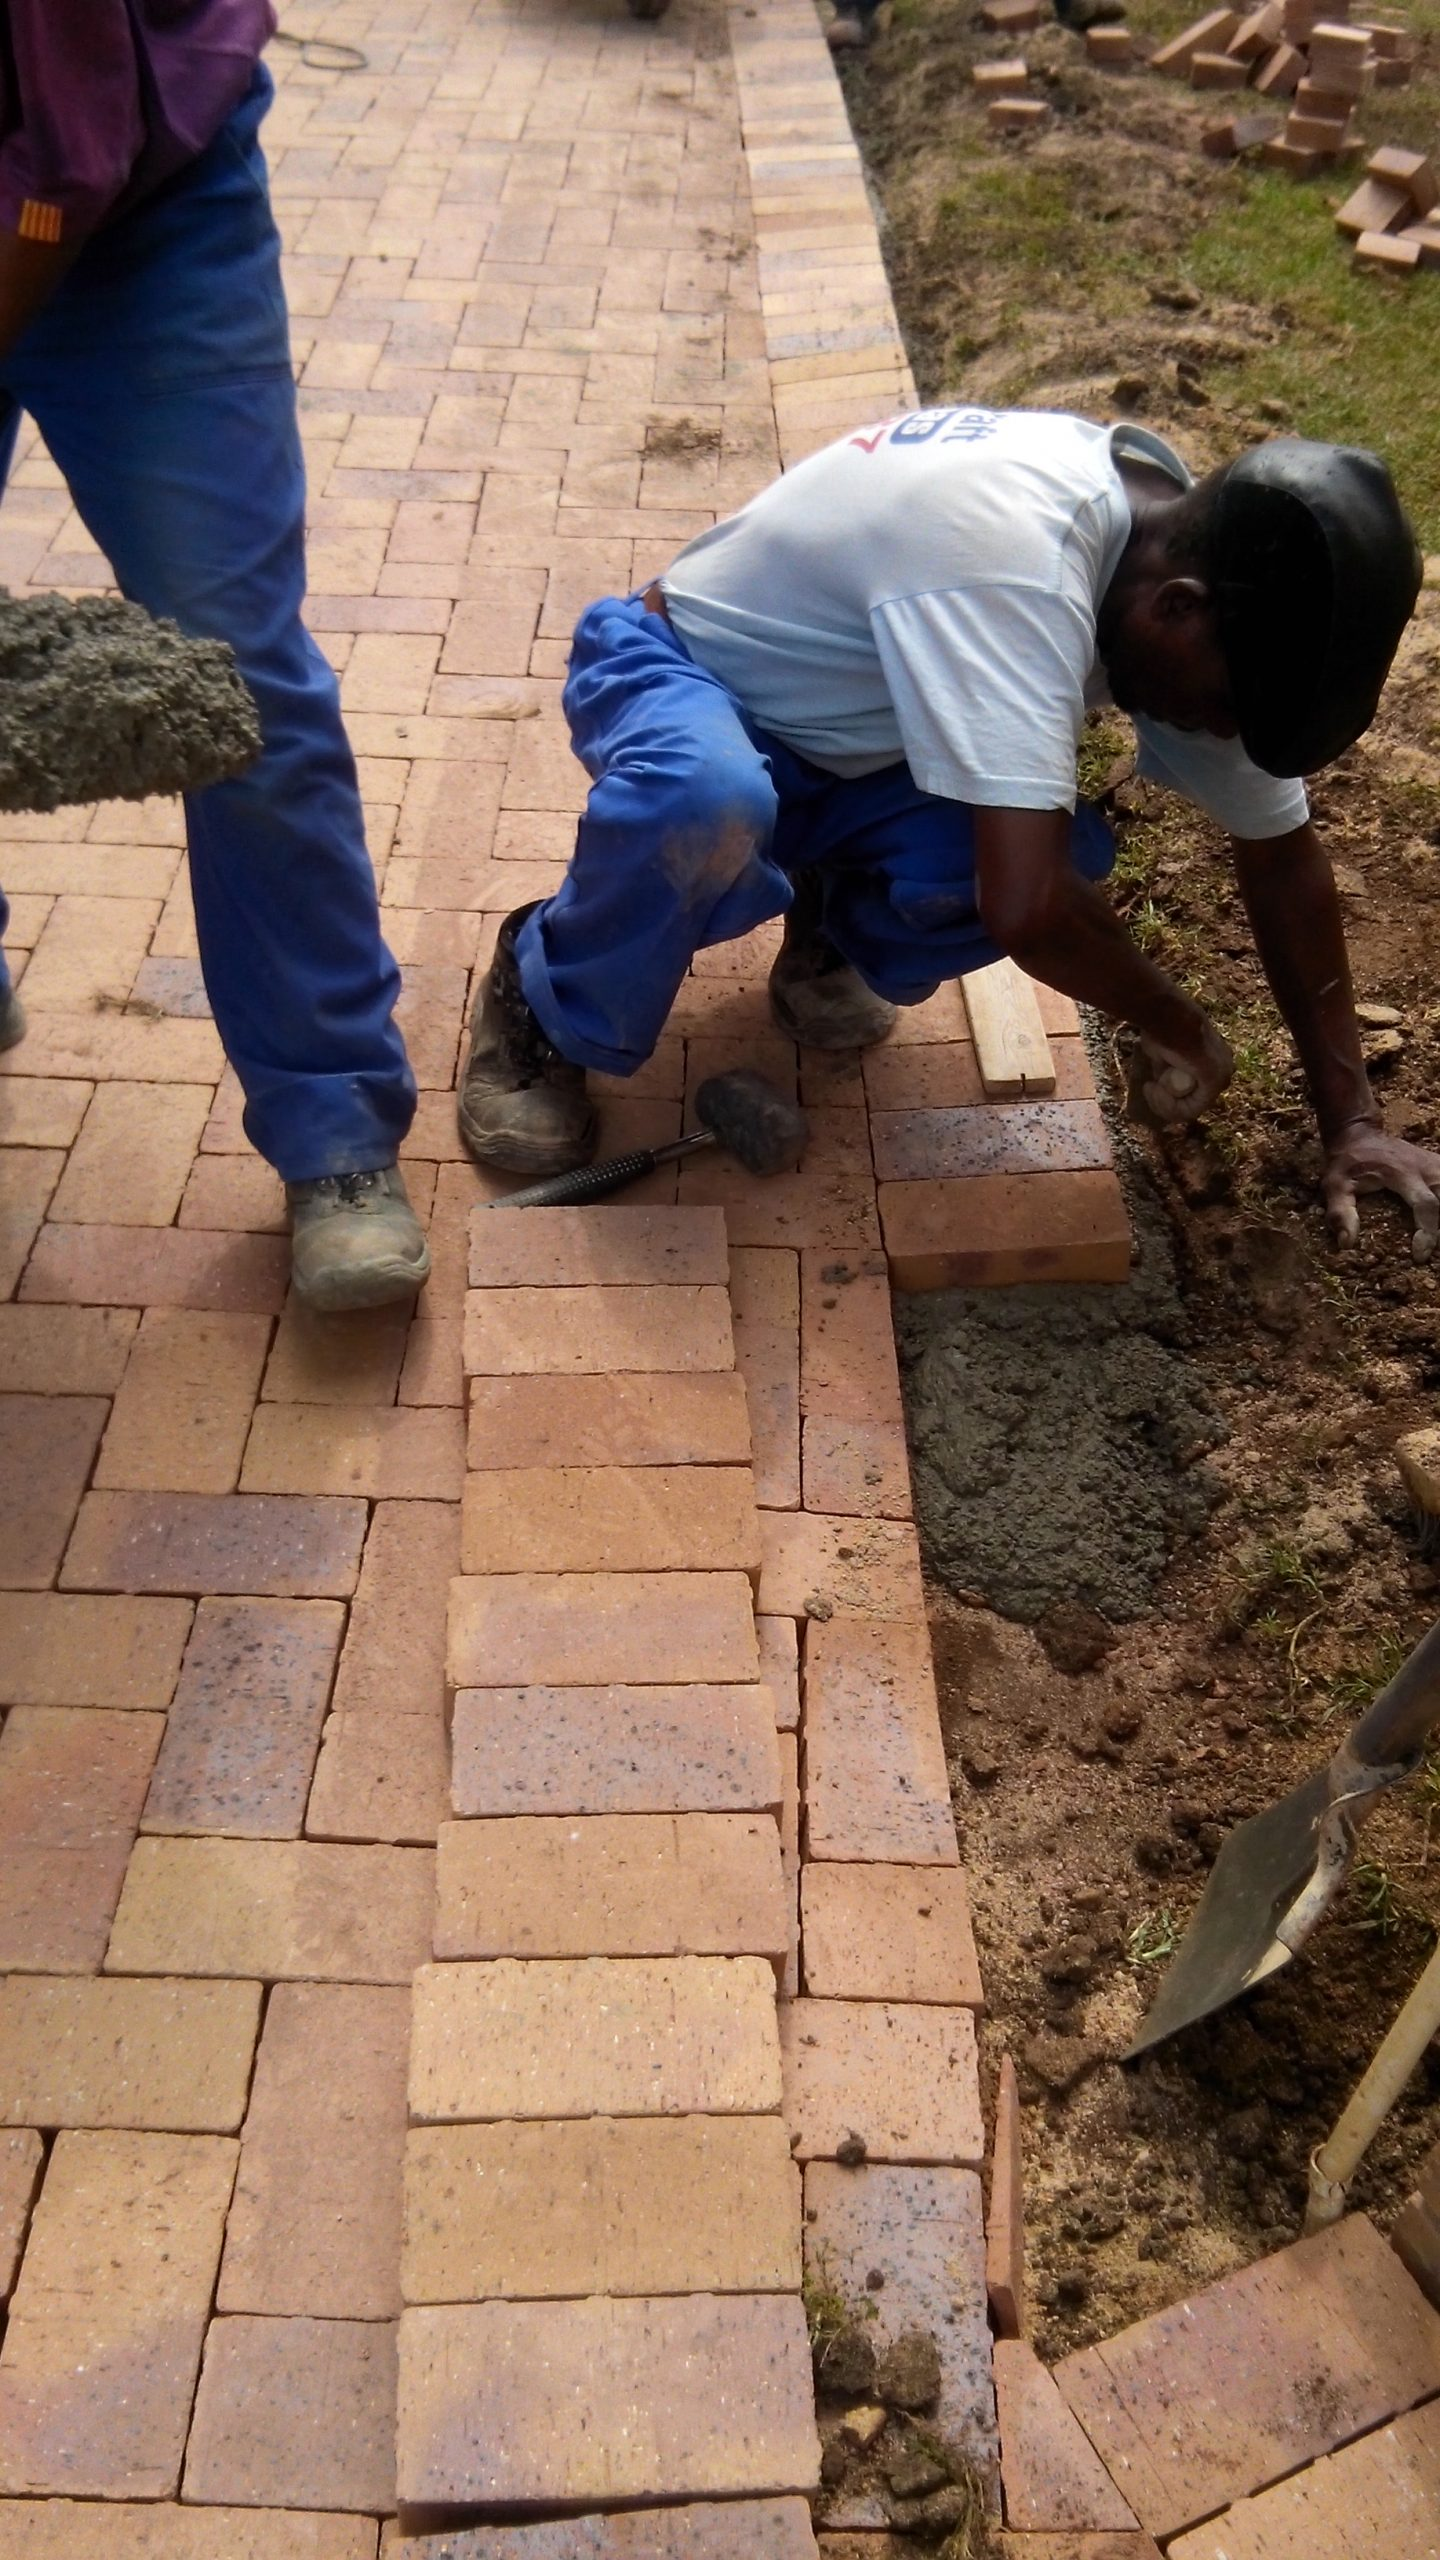 Repairs to a damaged driveway.